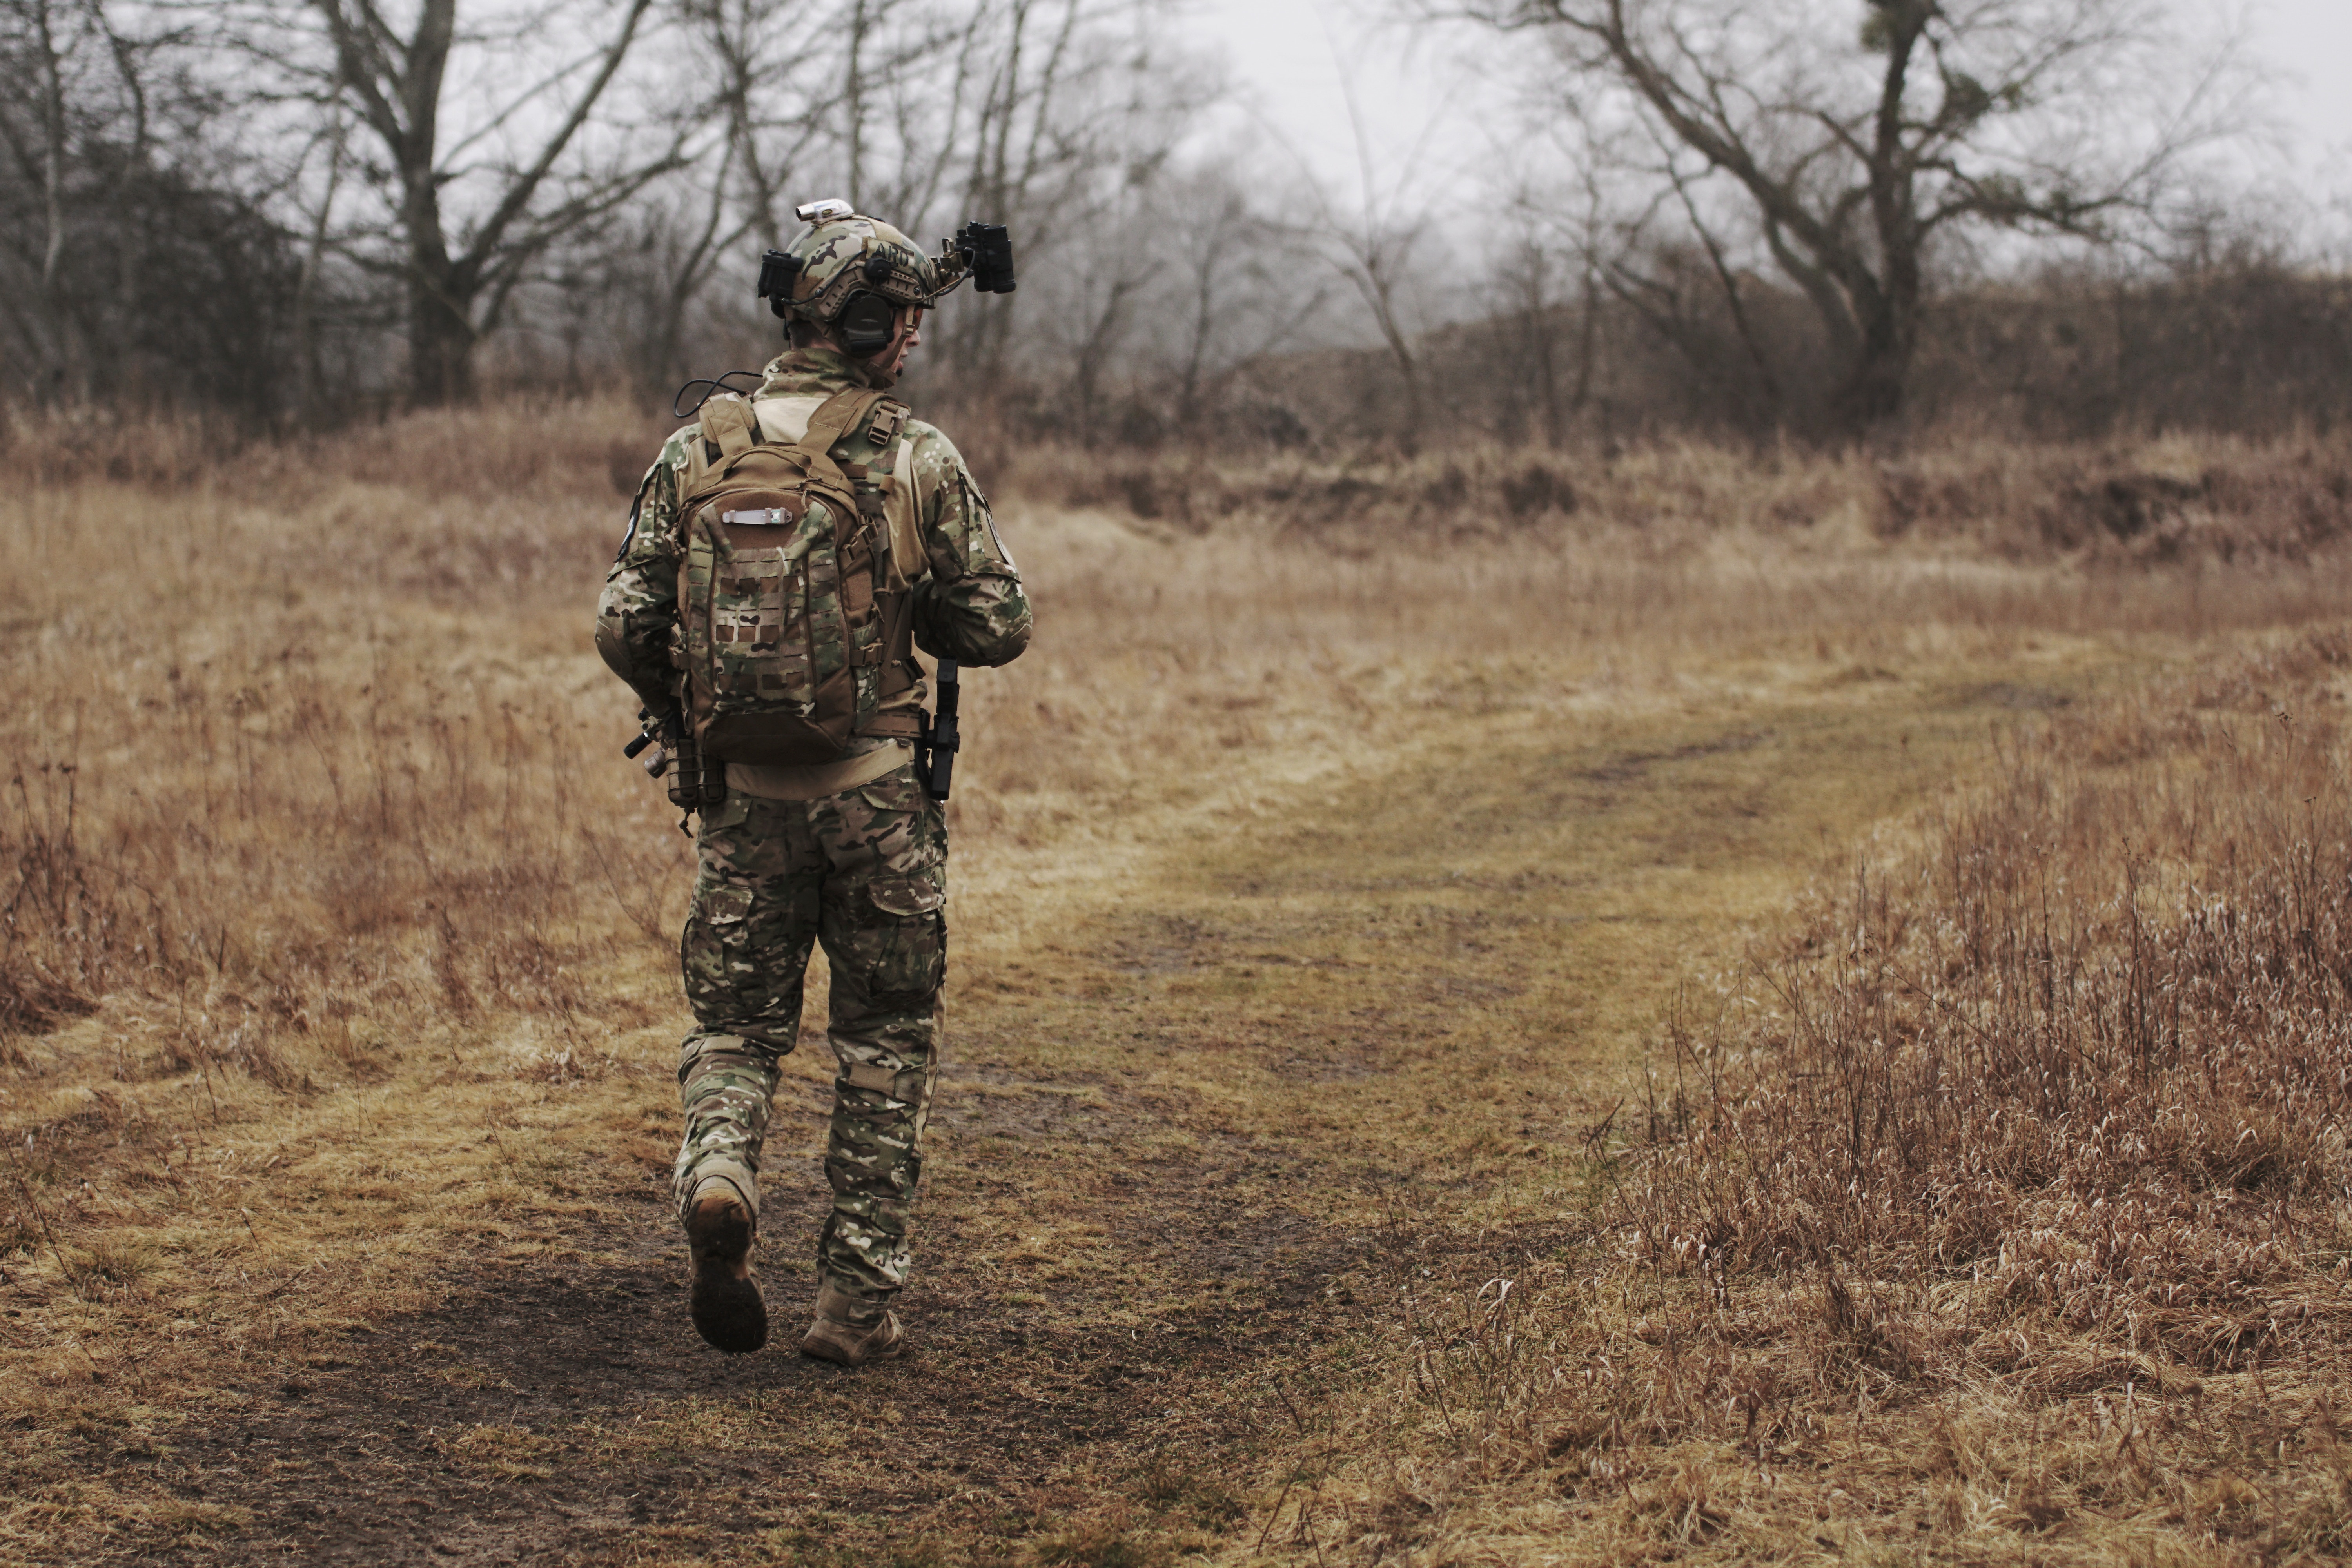 military soldier walking alone through a field